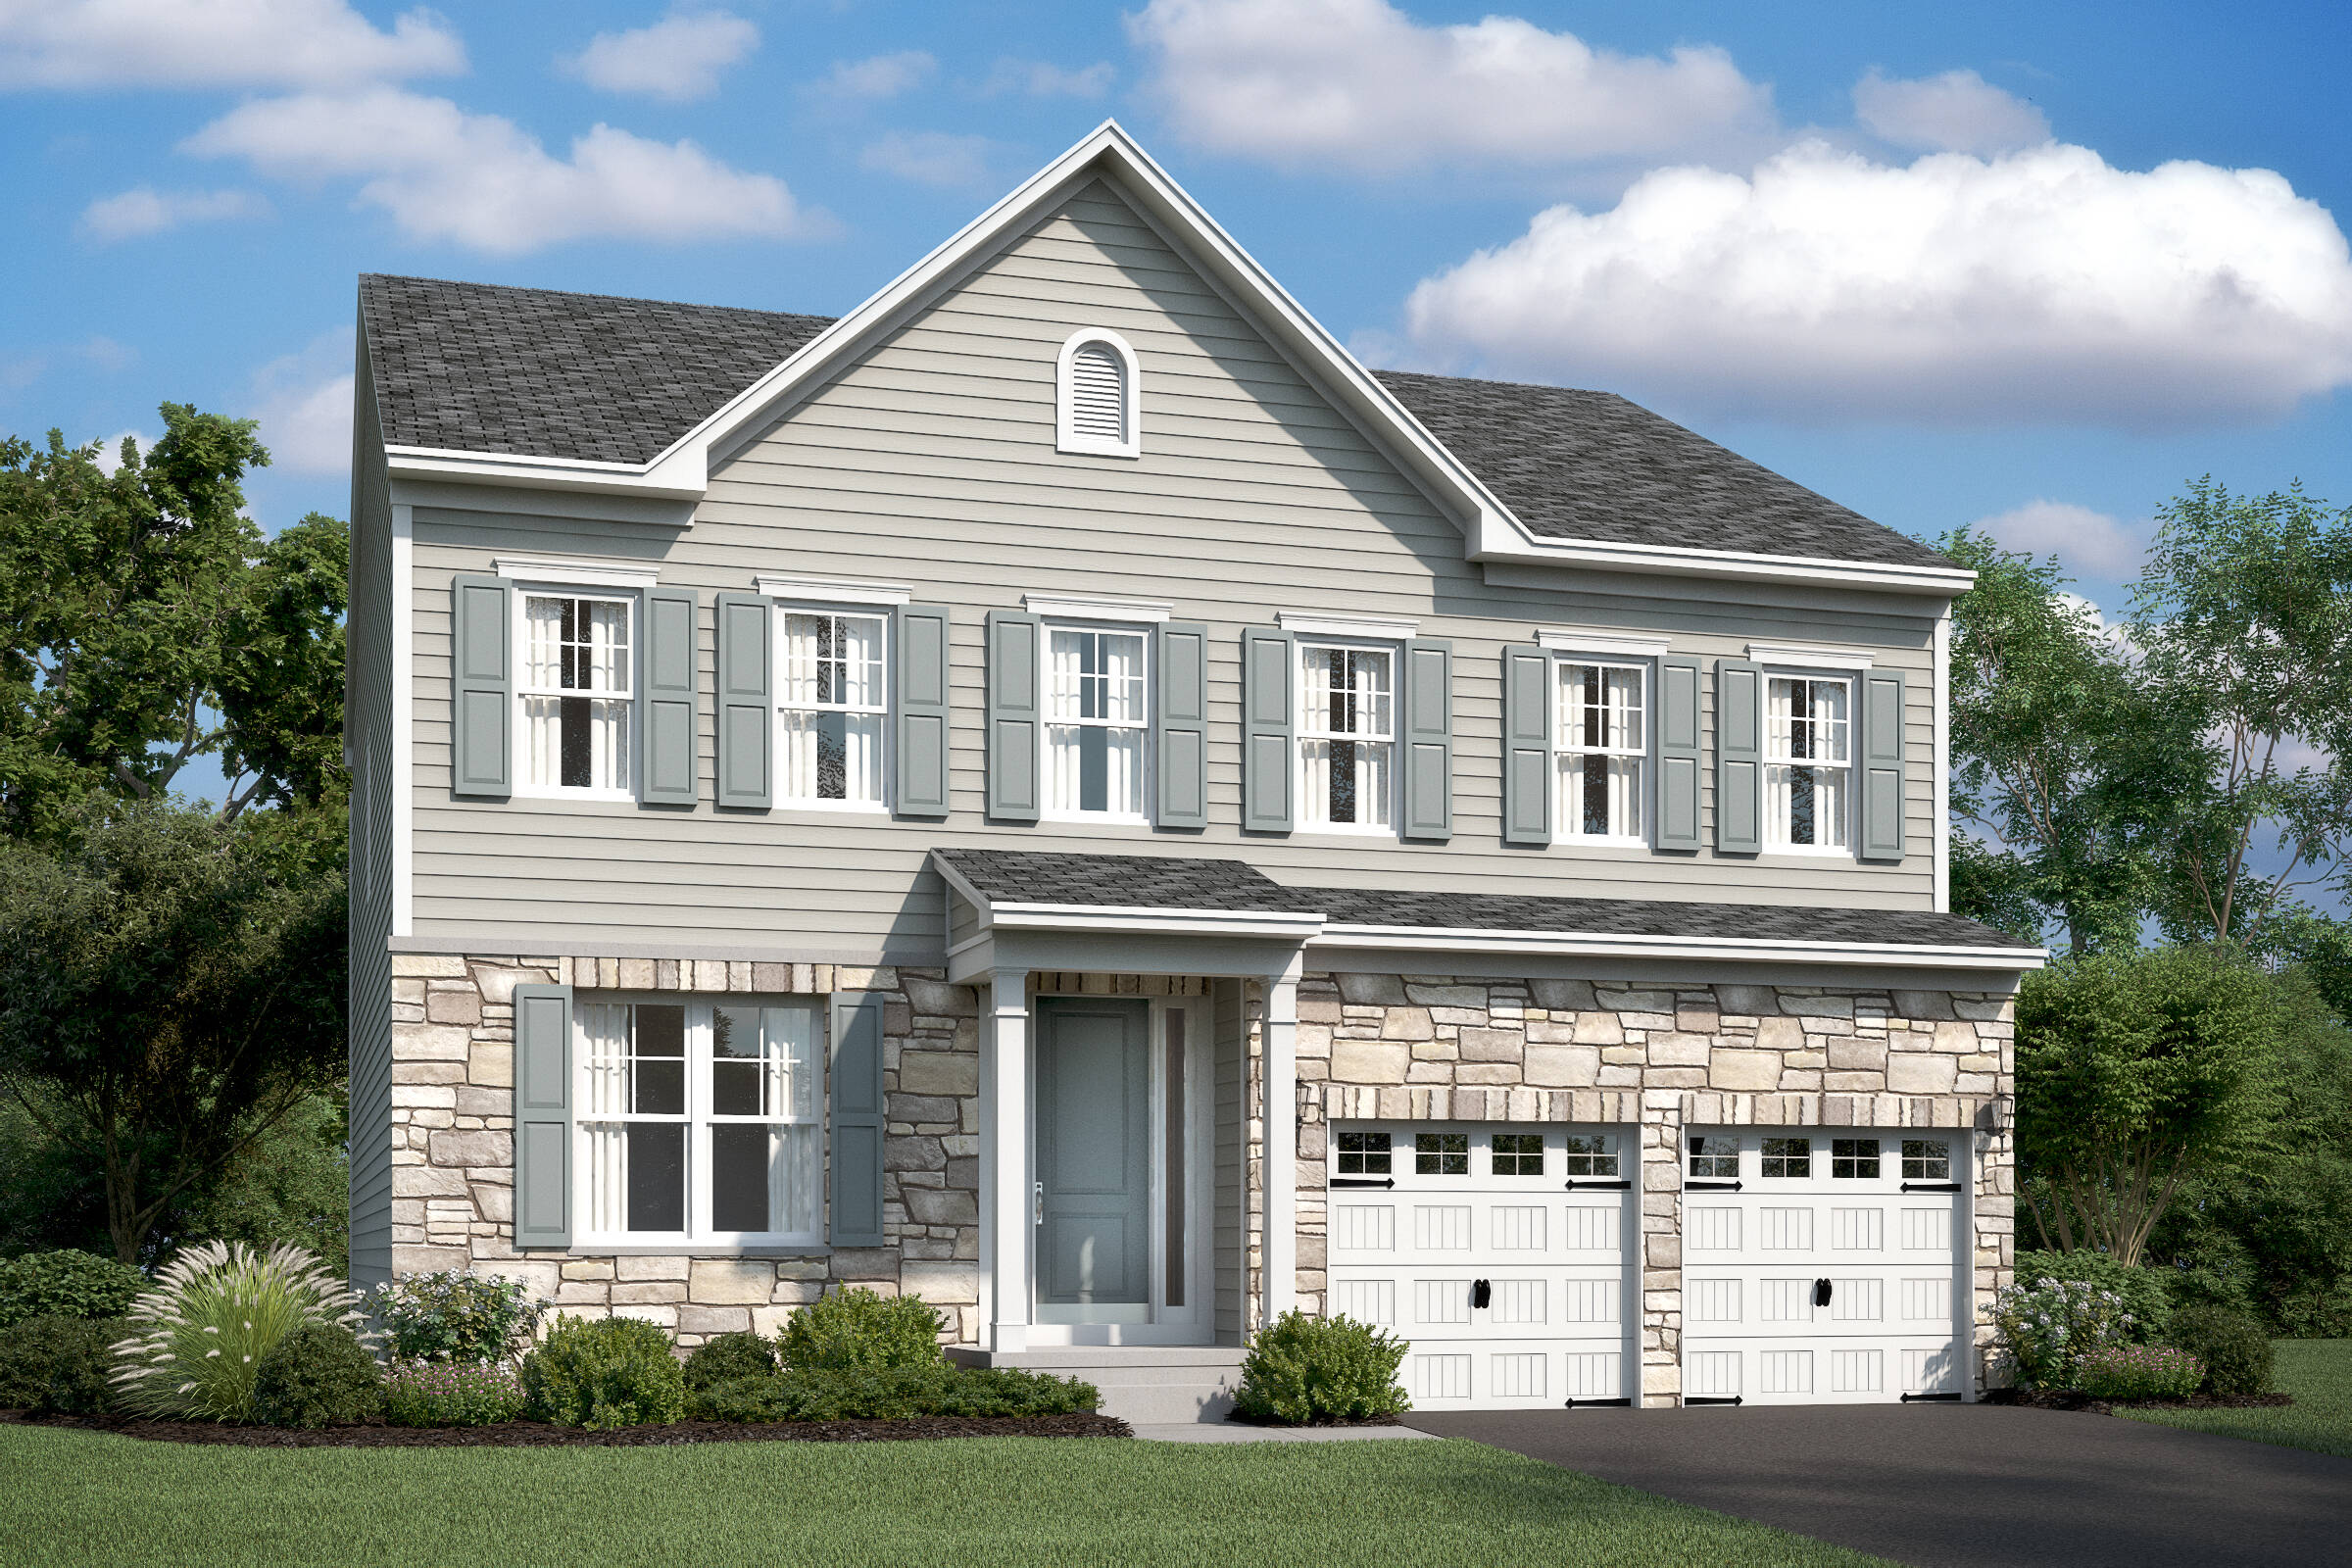 lexington-bt-new-homes-at-eden-terrace